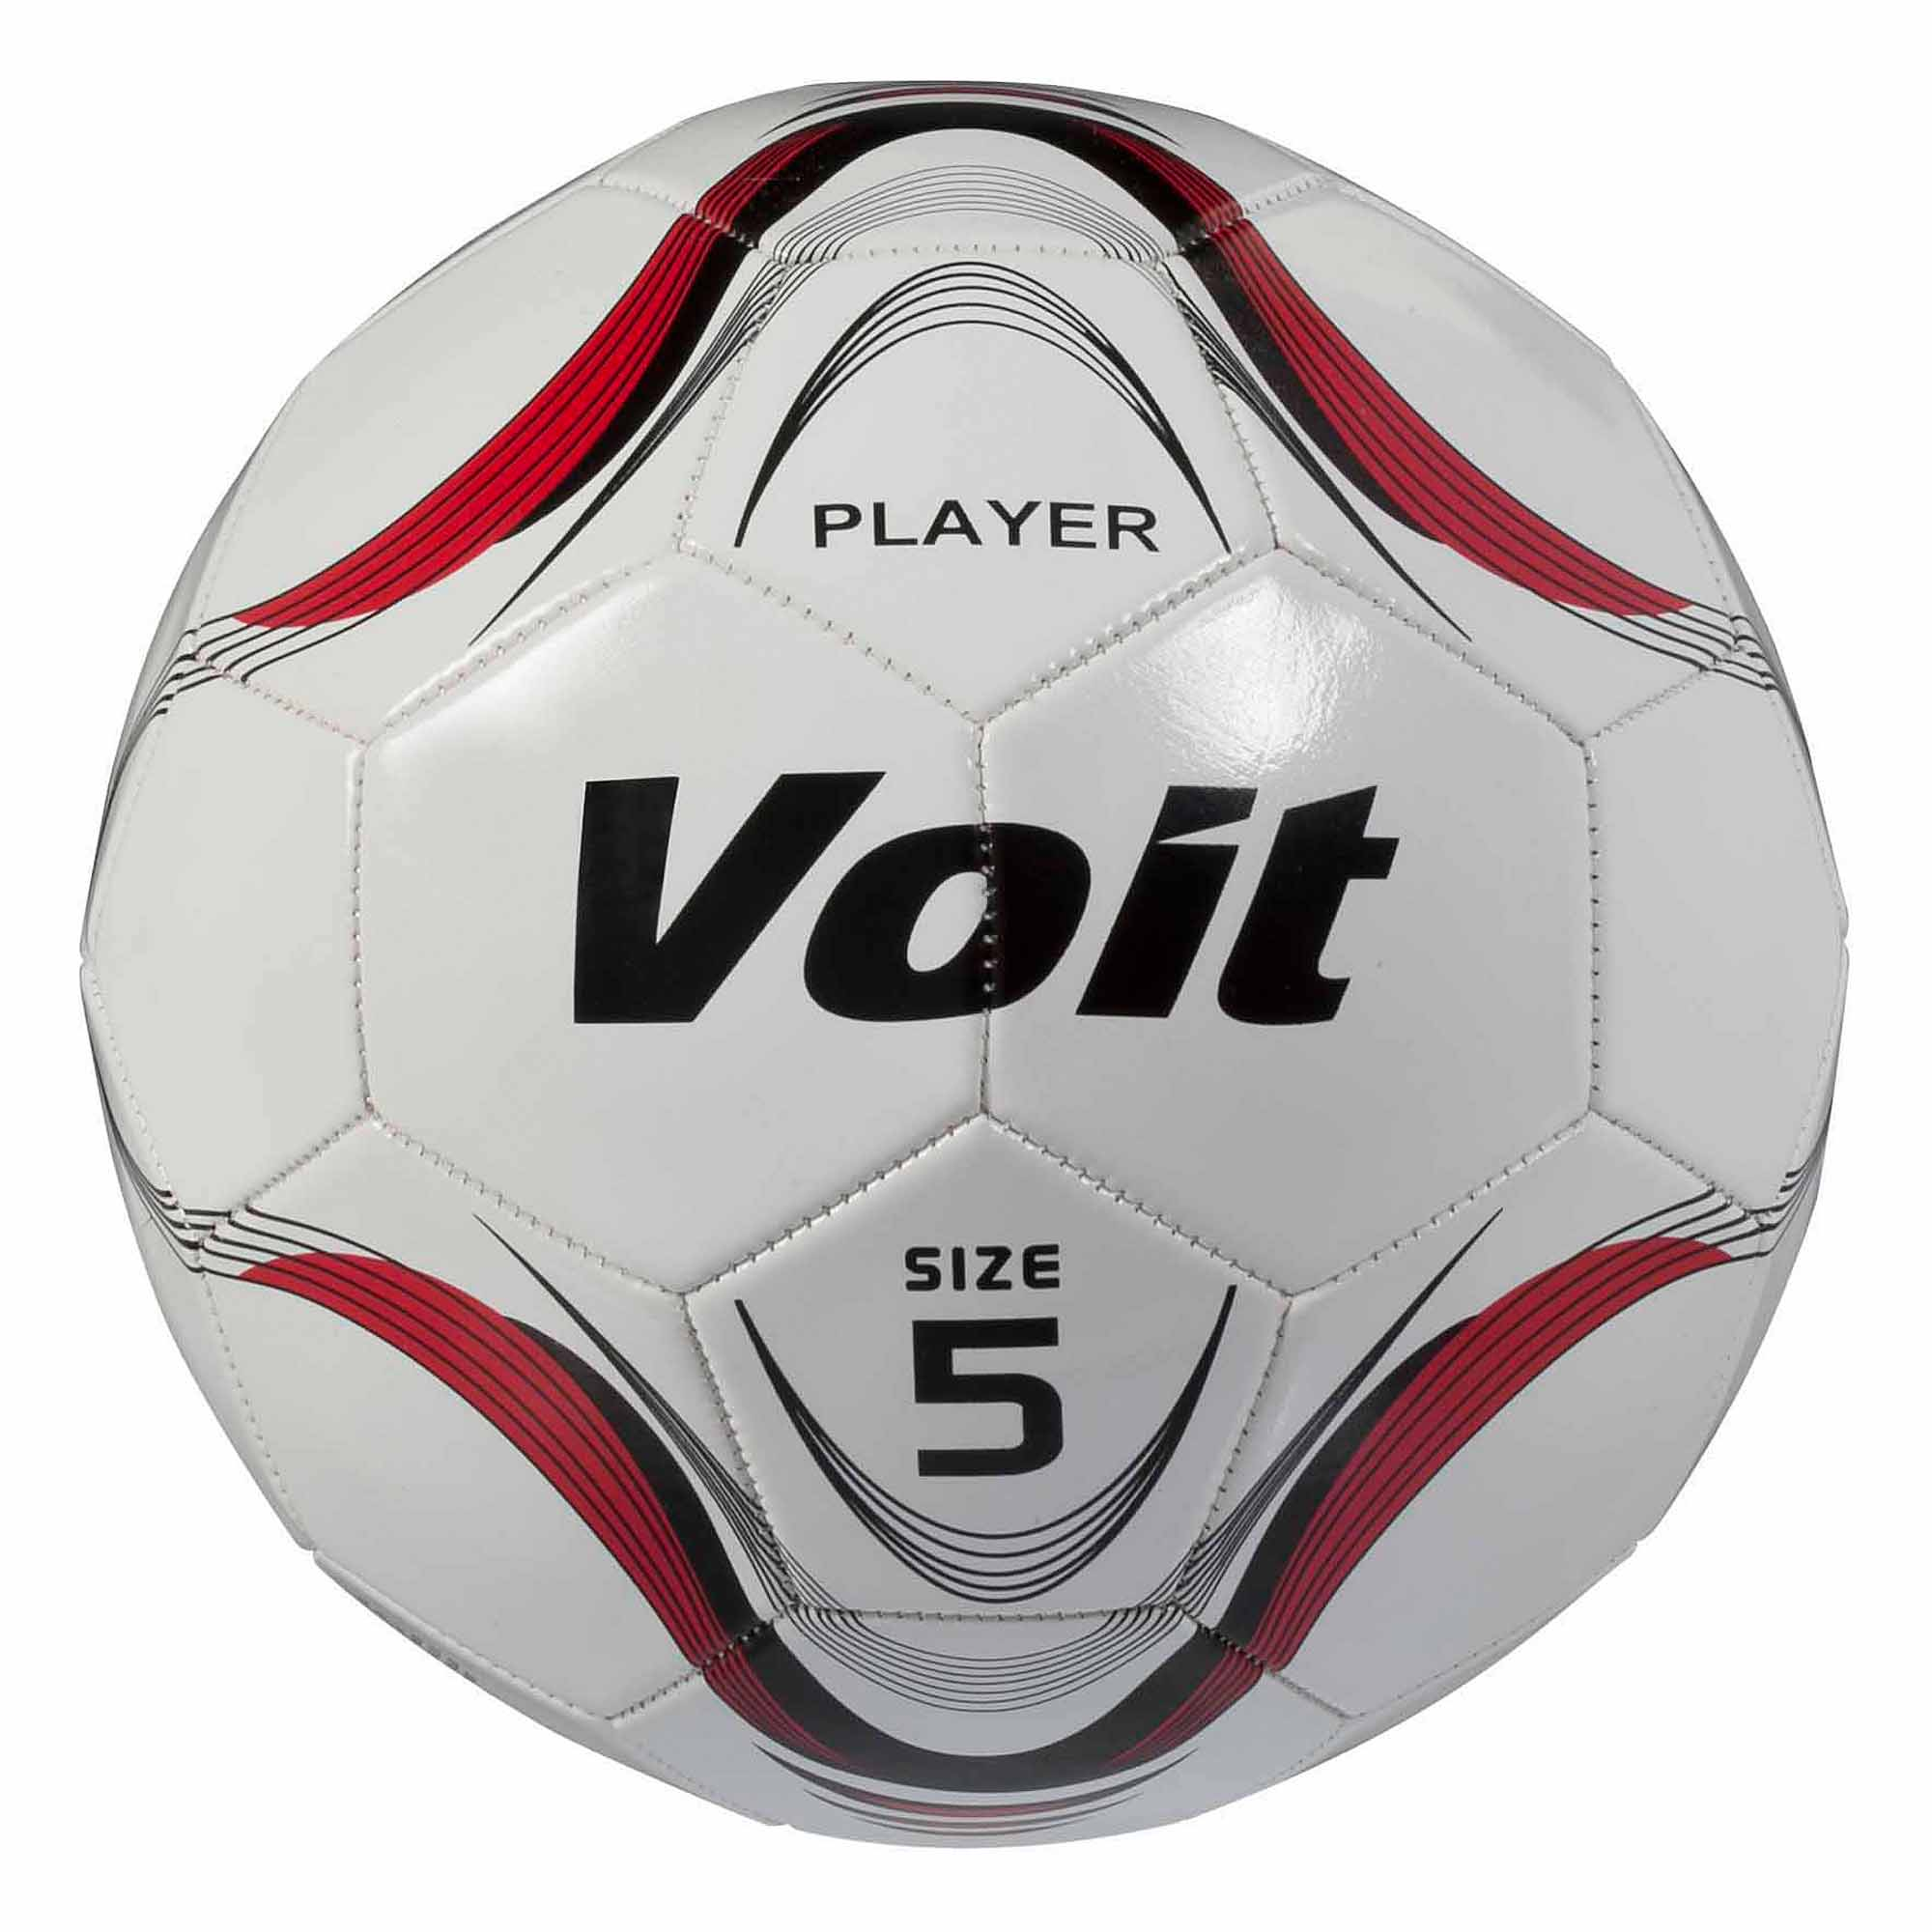 Voit Size 5 Player Soccer Ball, Deflated, White and Red Graphic